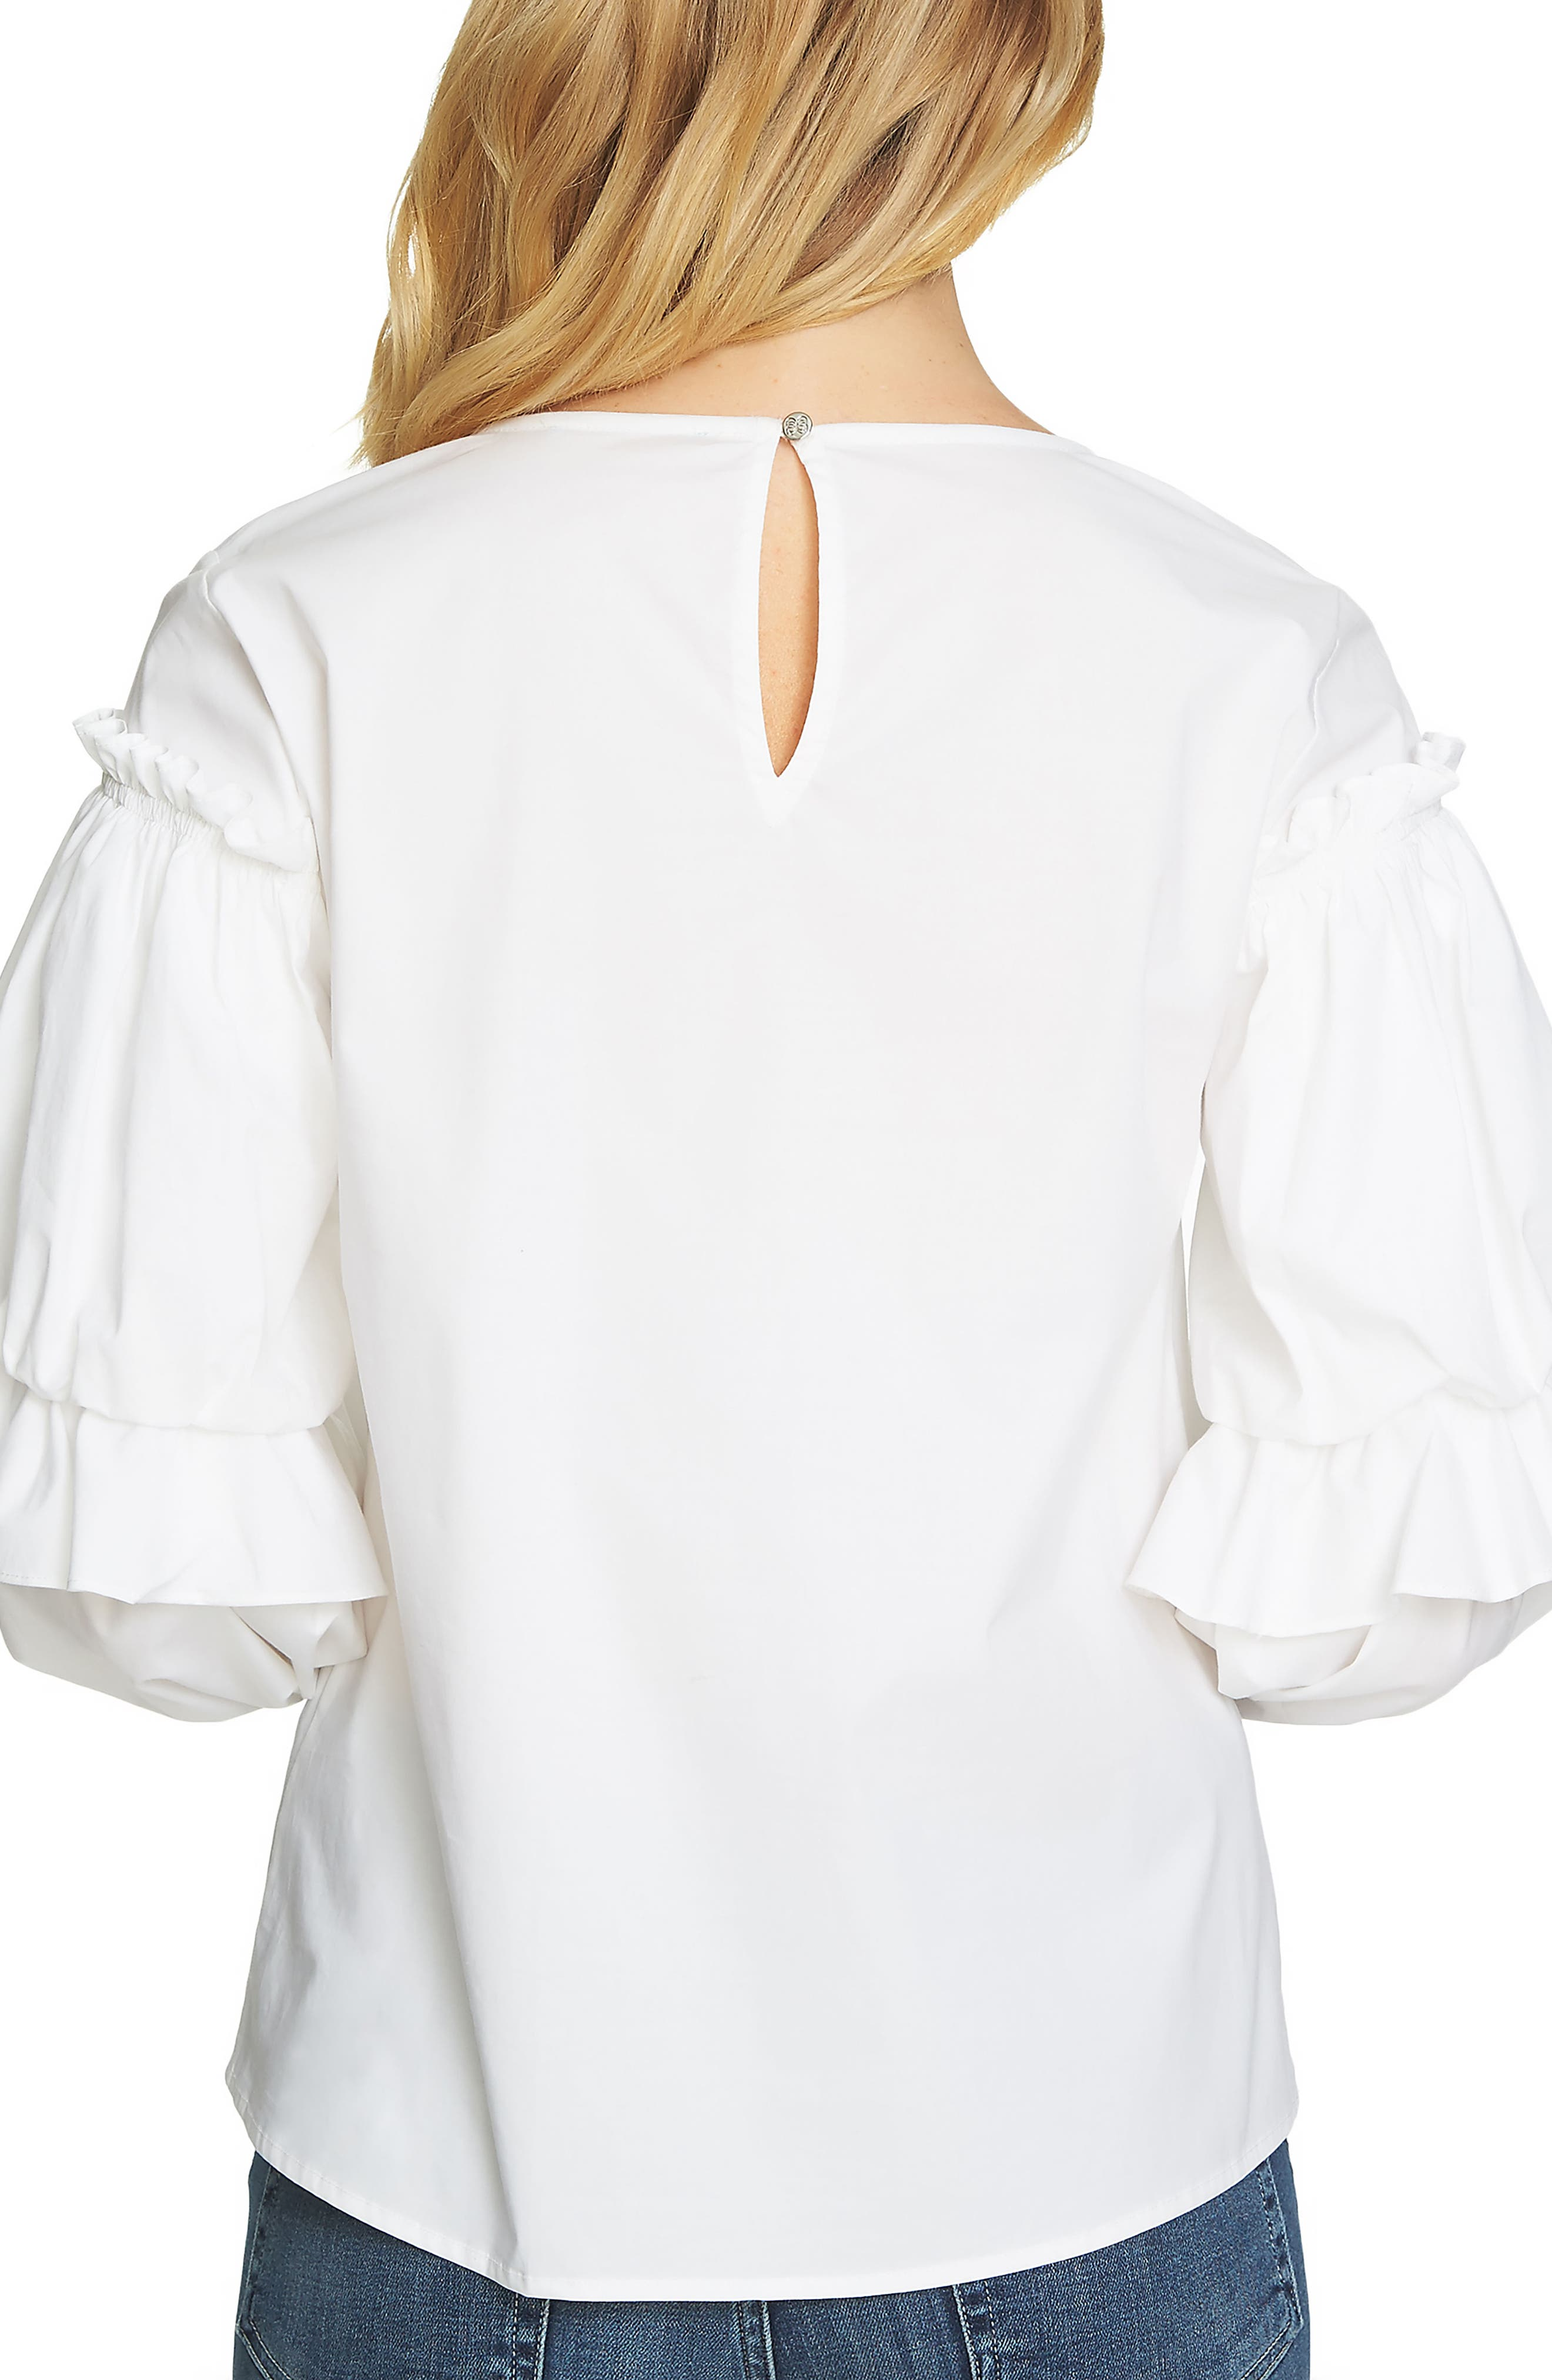 Balloon Sleeve Blouse,                             Alternate thumbnail 2, color,                             Ultra White